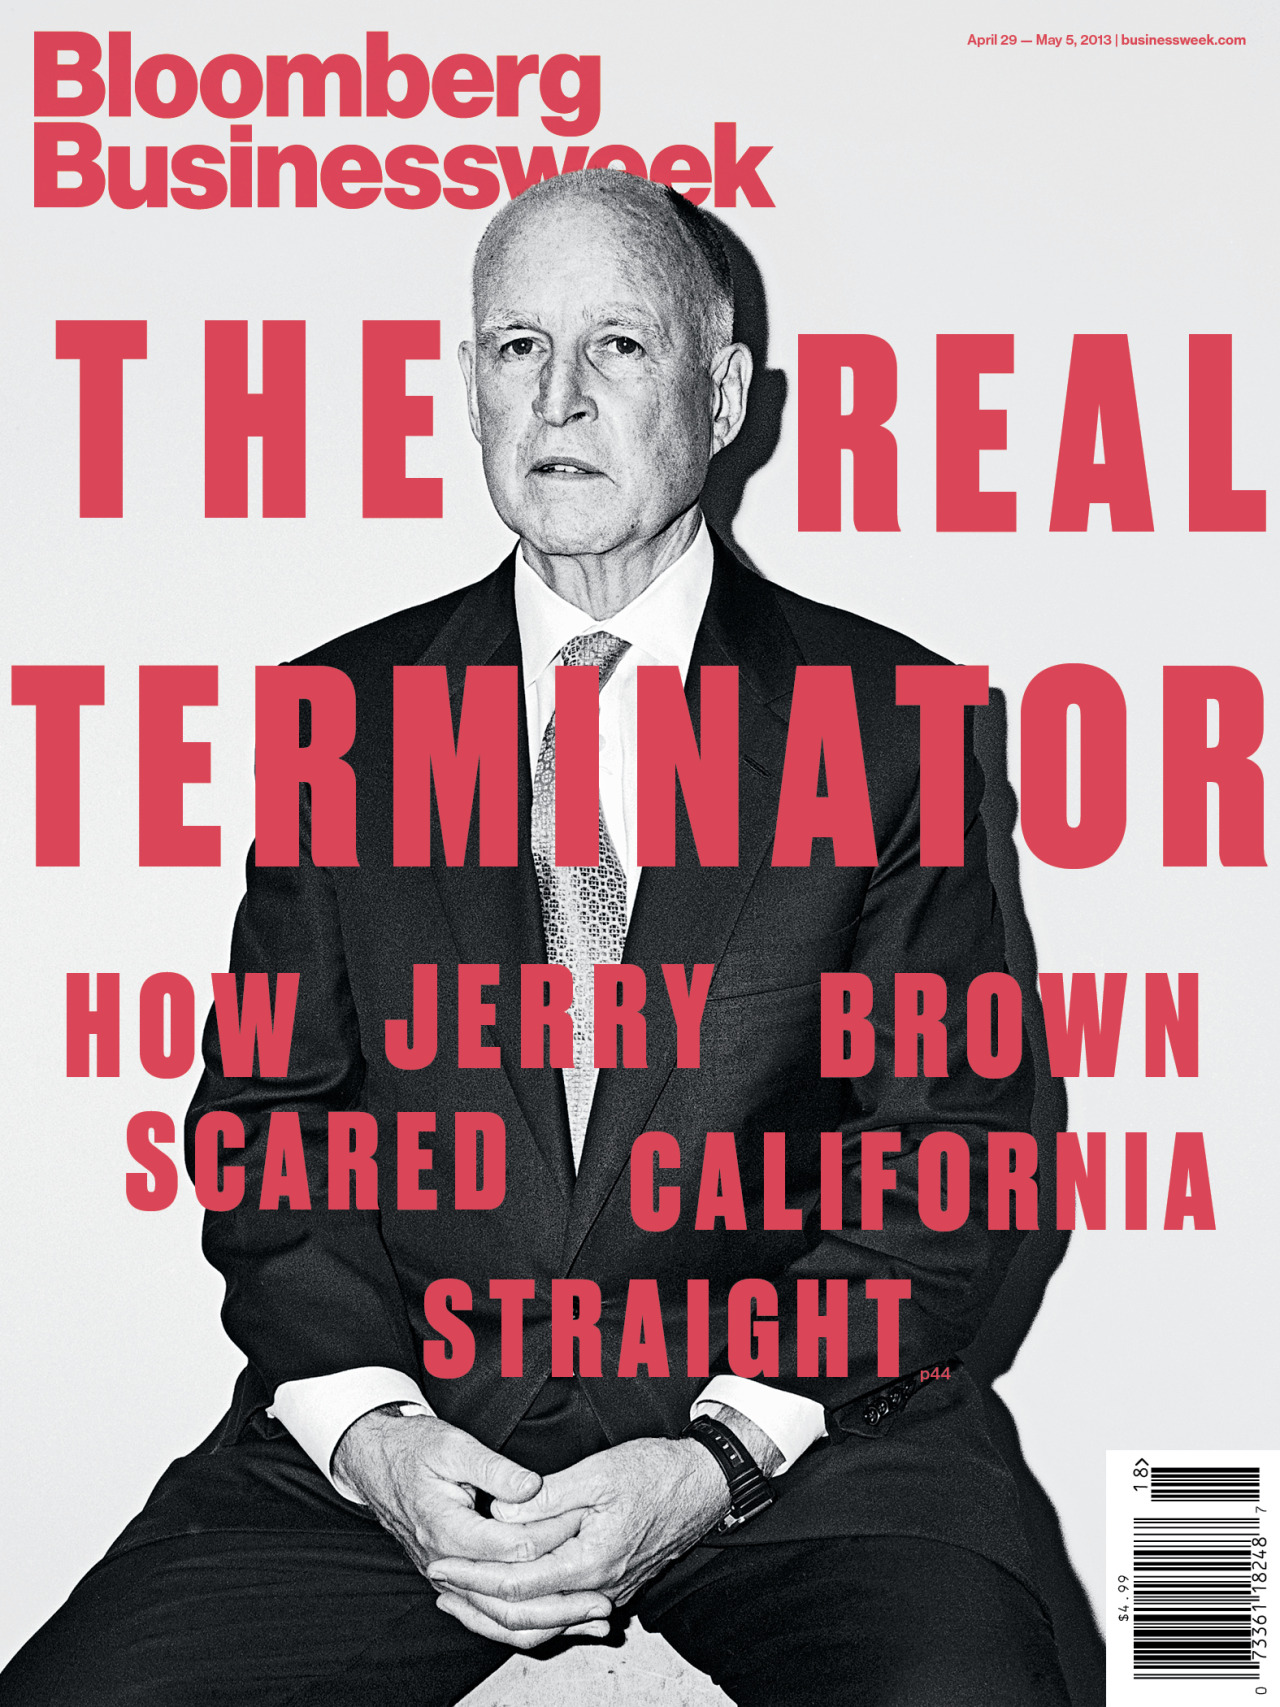 The Real Terminator How Jerry Brown scared California Straight